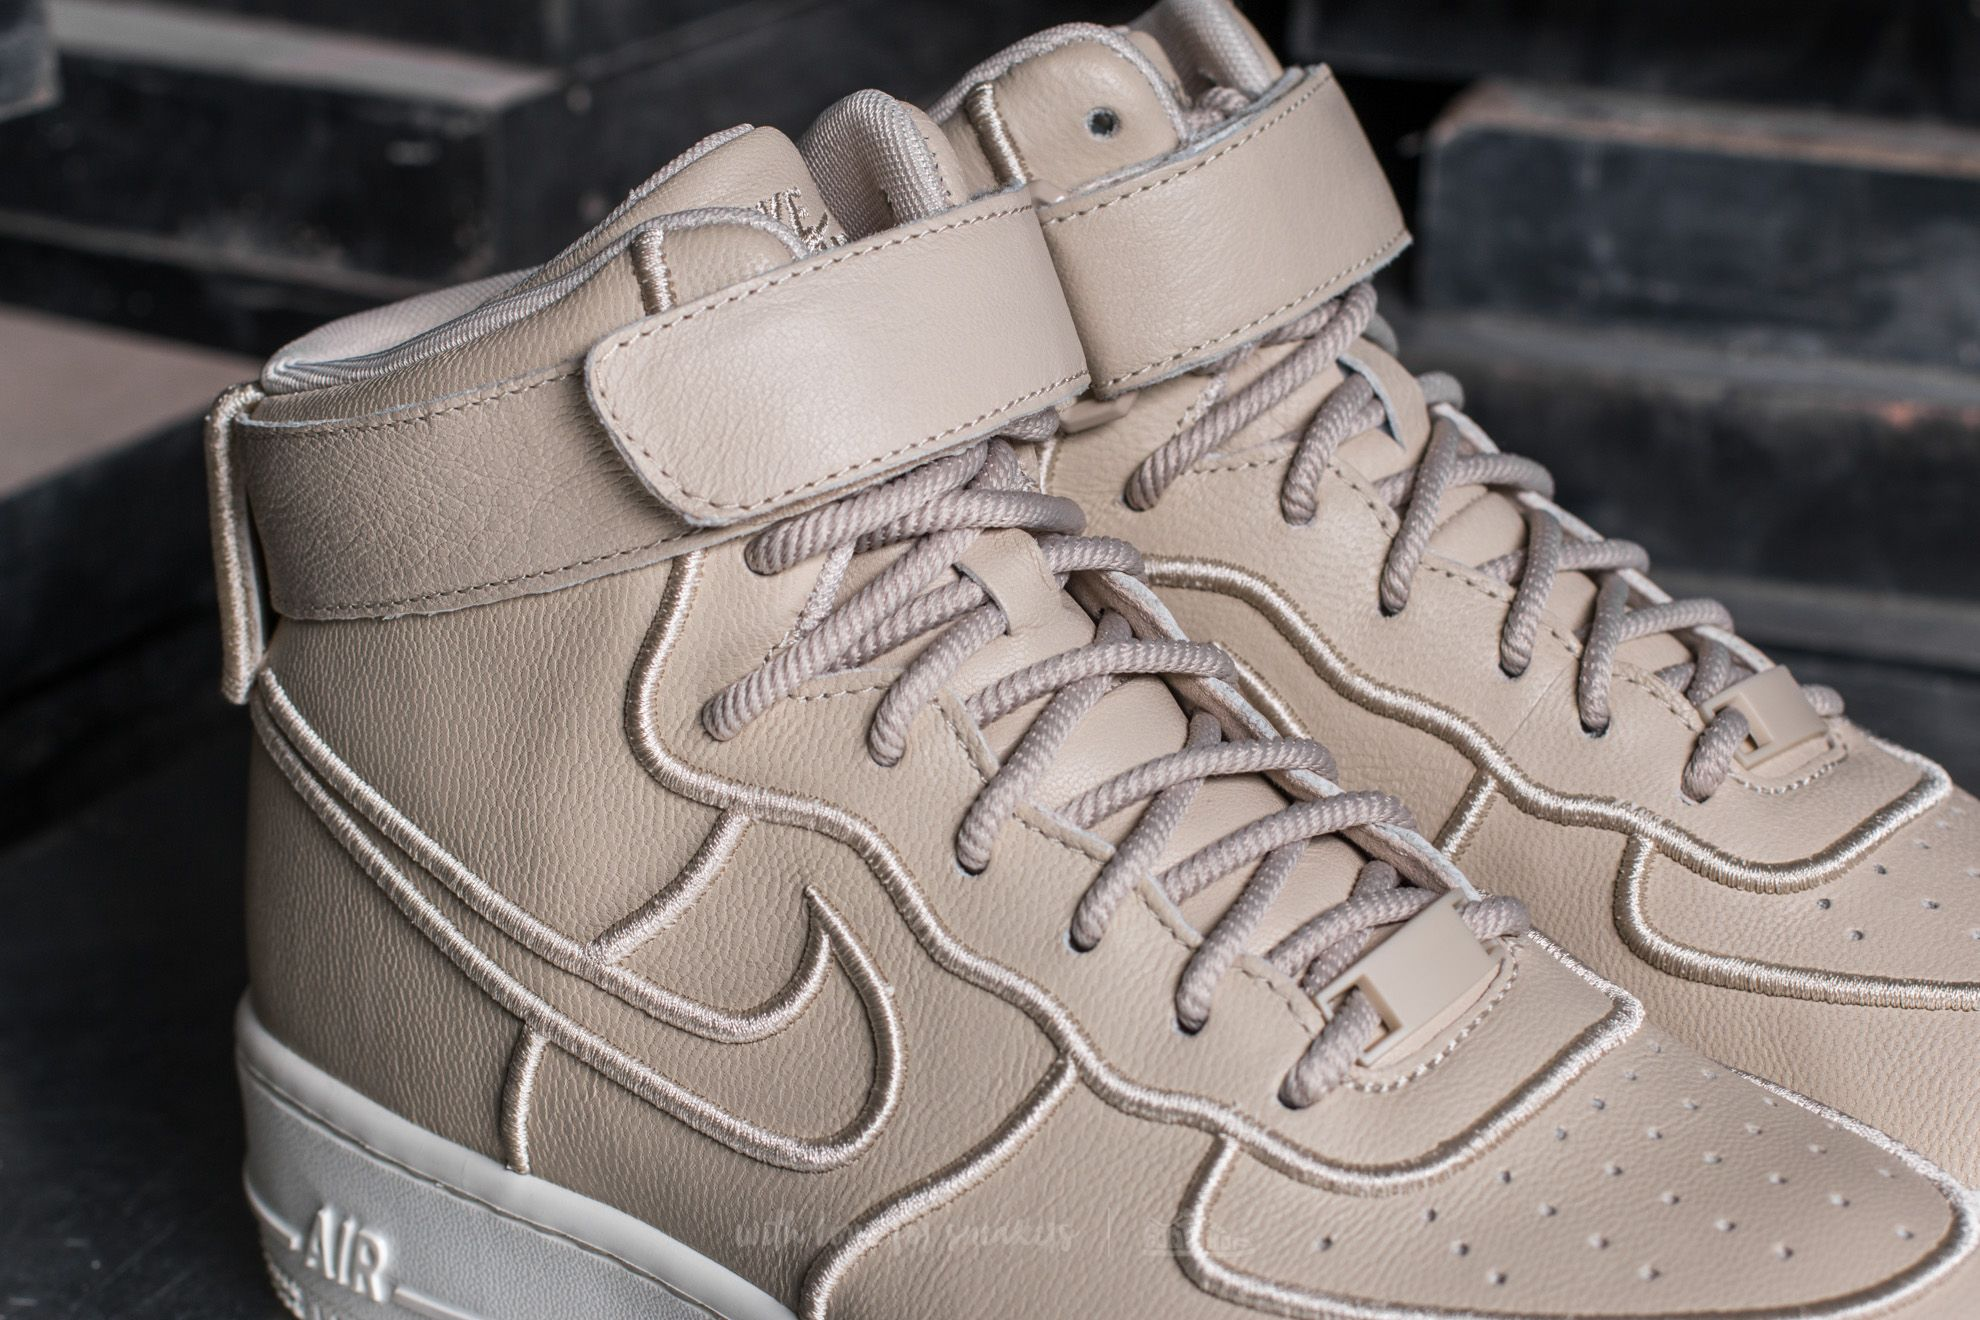 Nike Wmns Air Force 1 Upstep Hi SI Oatmeal Oatmeal Ivory | Footshop